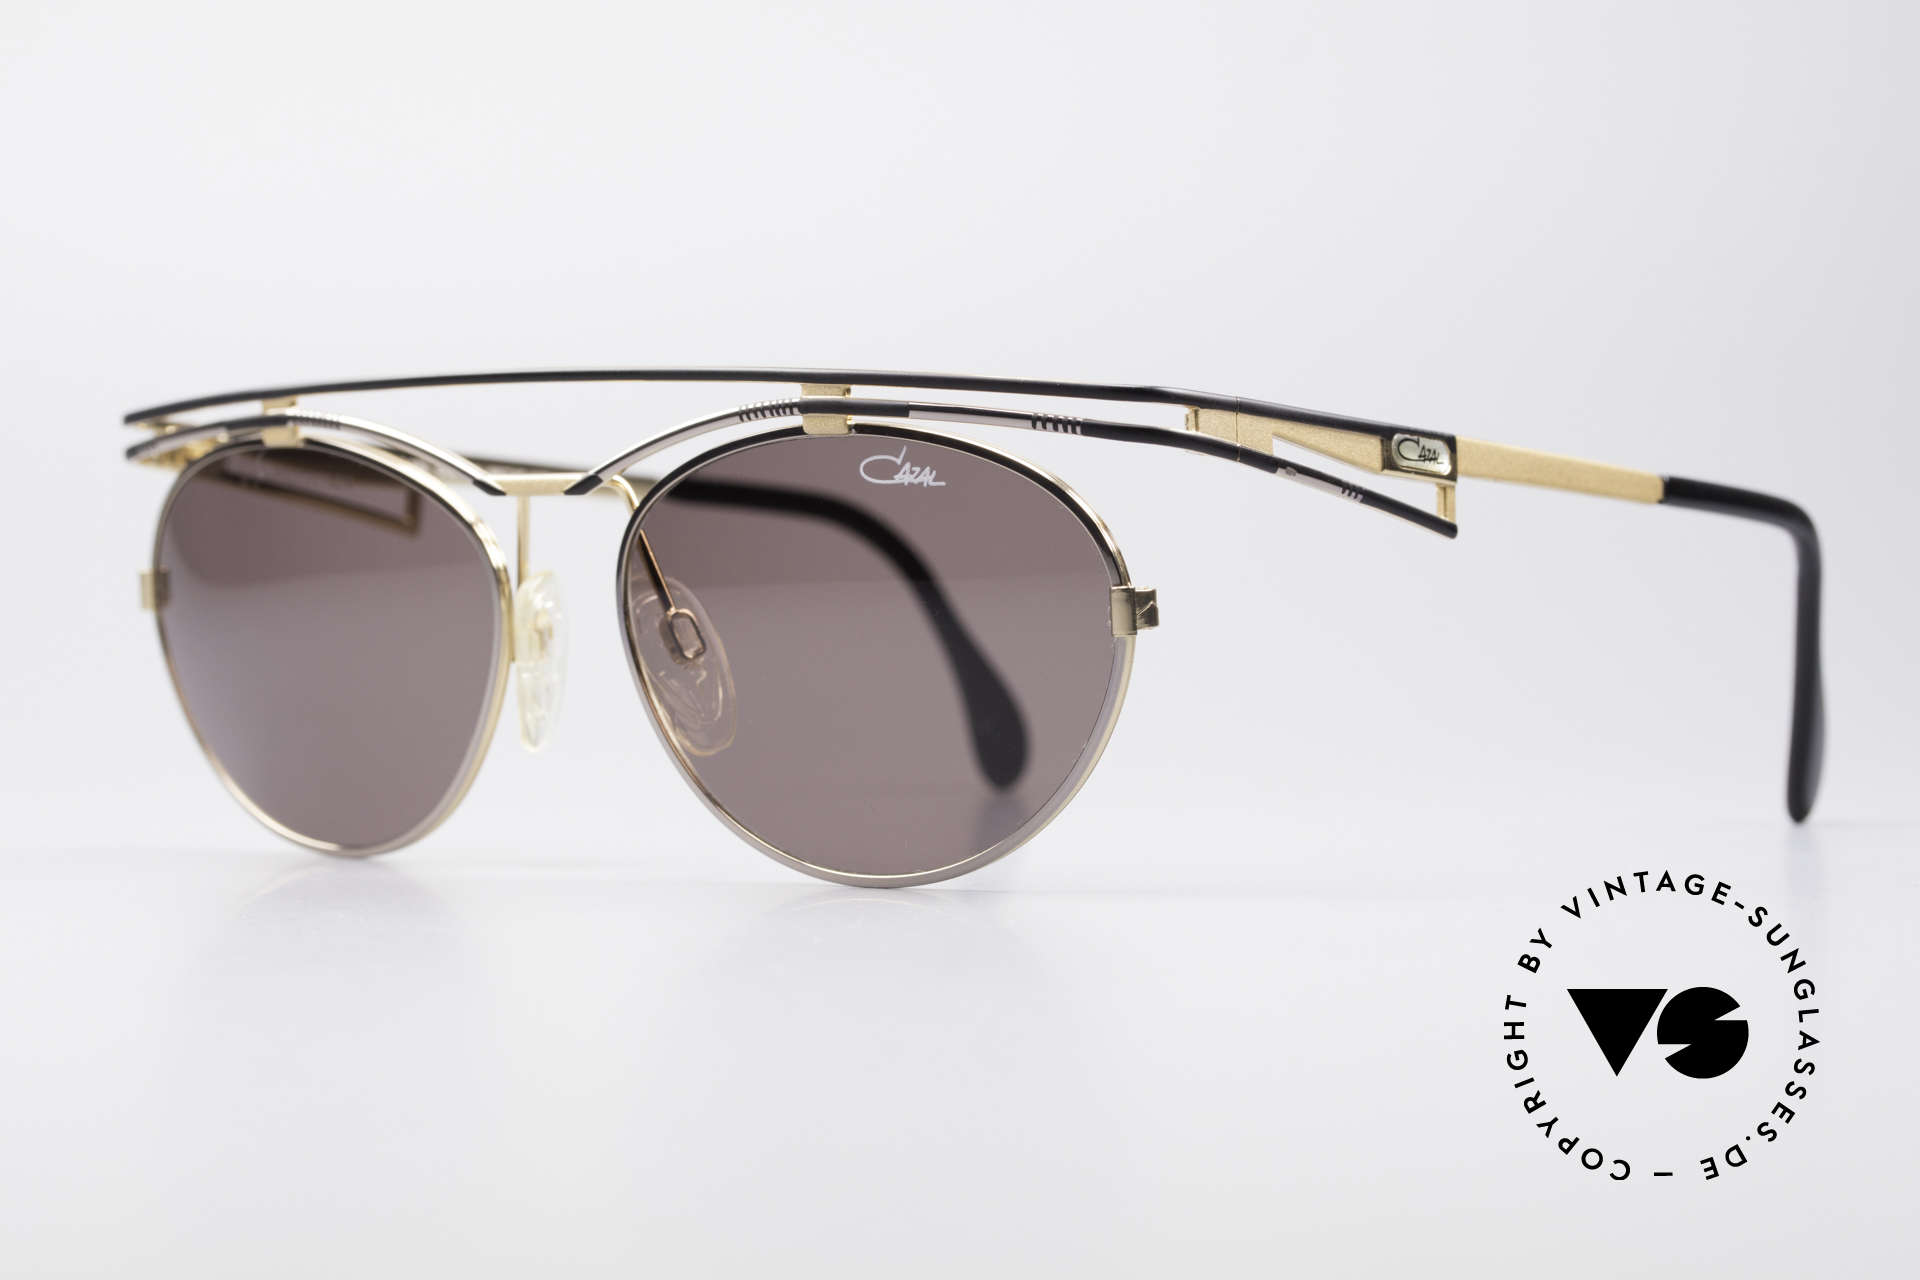 Cazal 970 Extraordinary Ladies Shades, sophisticated frame finish in tangible high-end quality, Made for Women